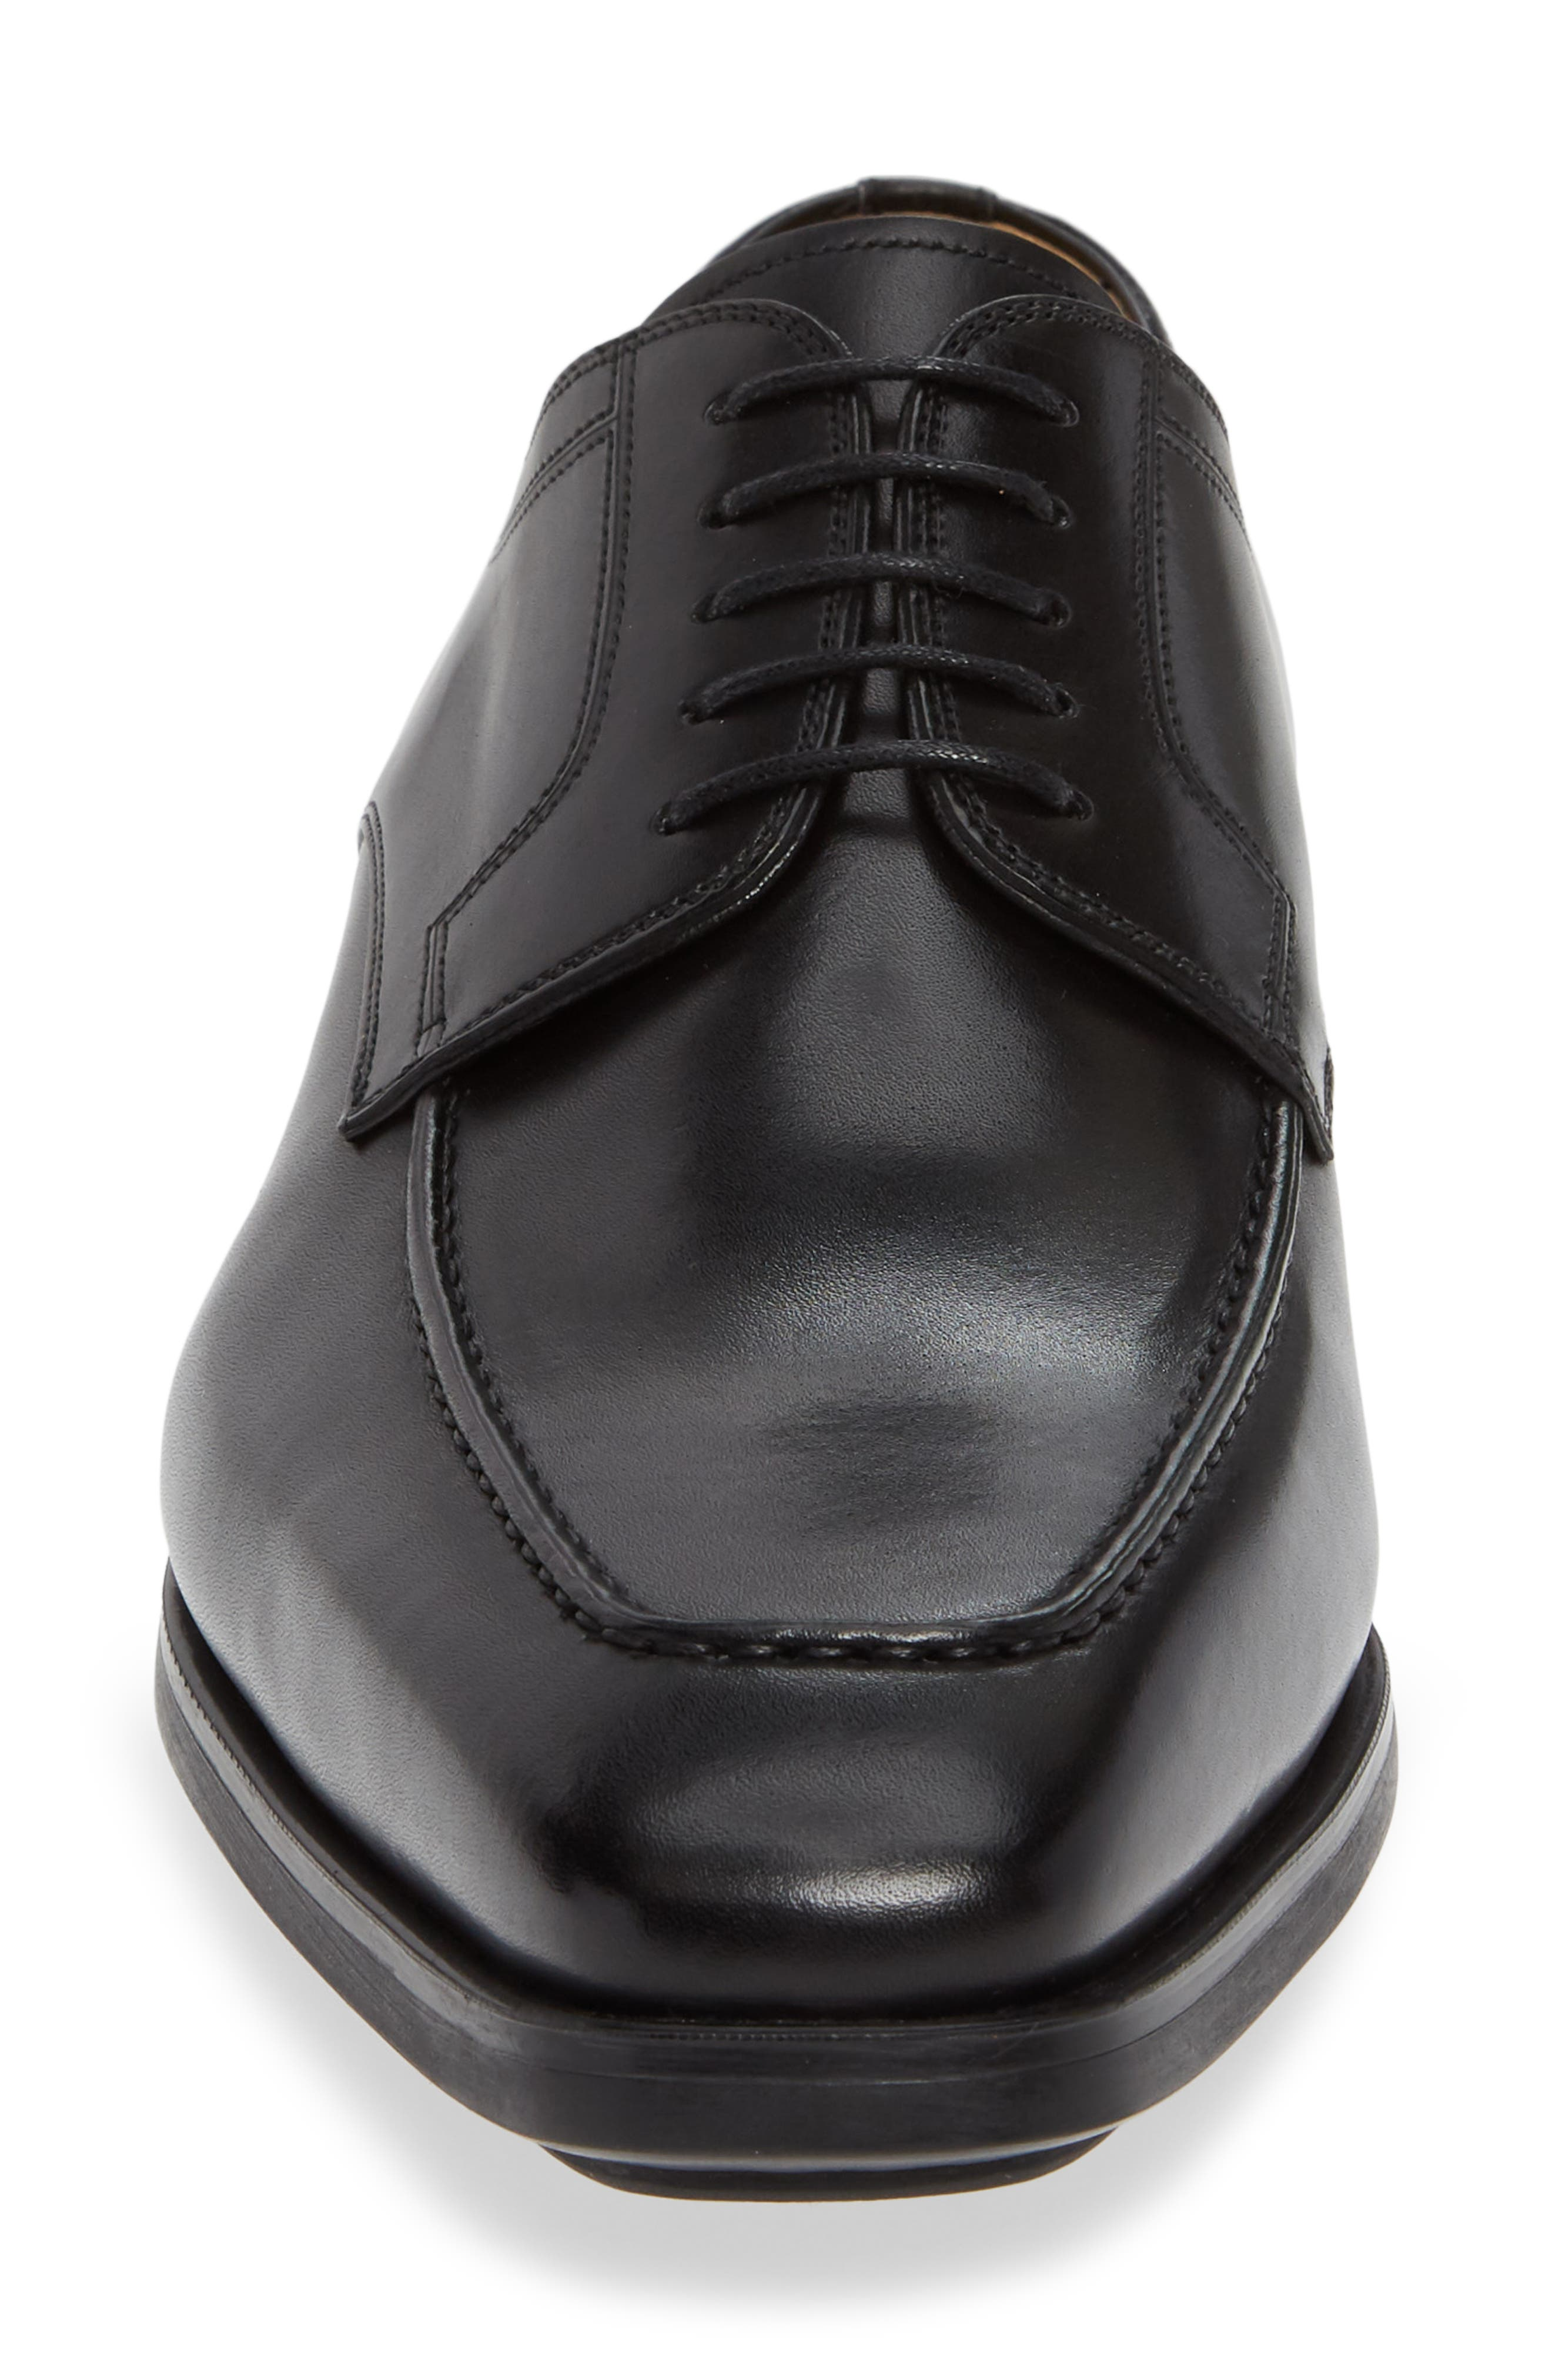 MAGNANNI,                             Diversa Romelo Apron Toe Derby,                             Alternate thumbnail 4, color,                             BLACK LEATHER